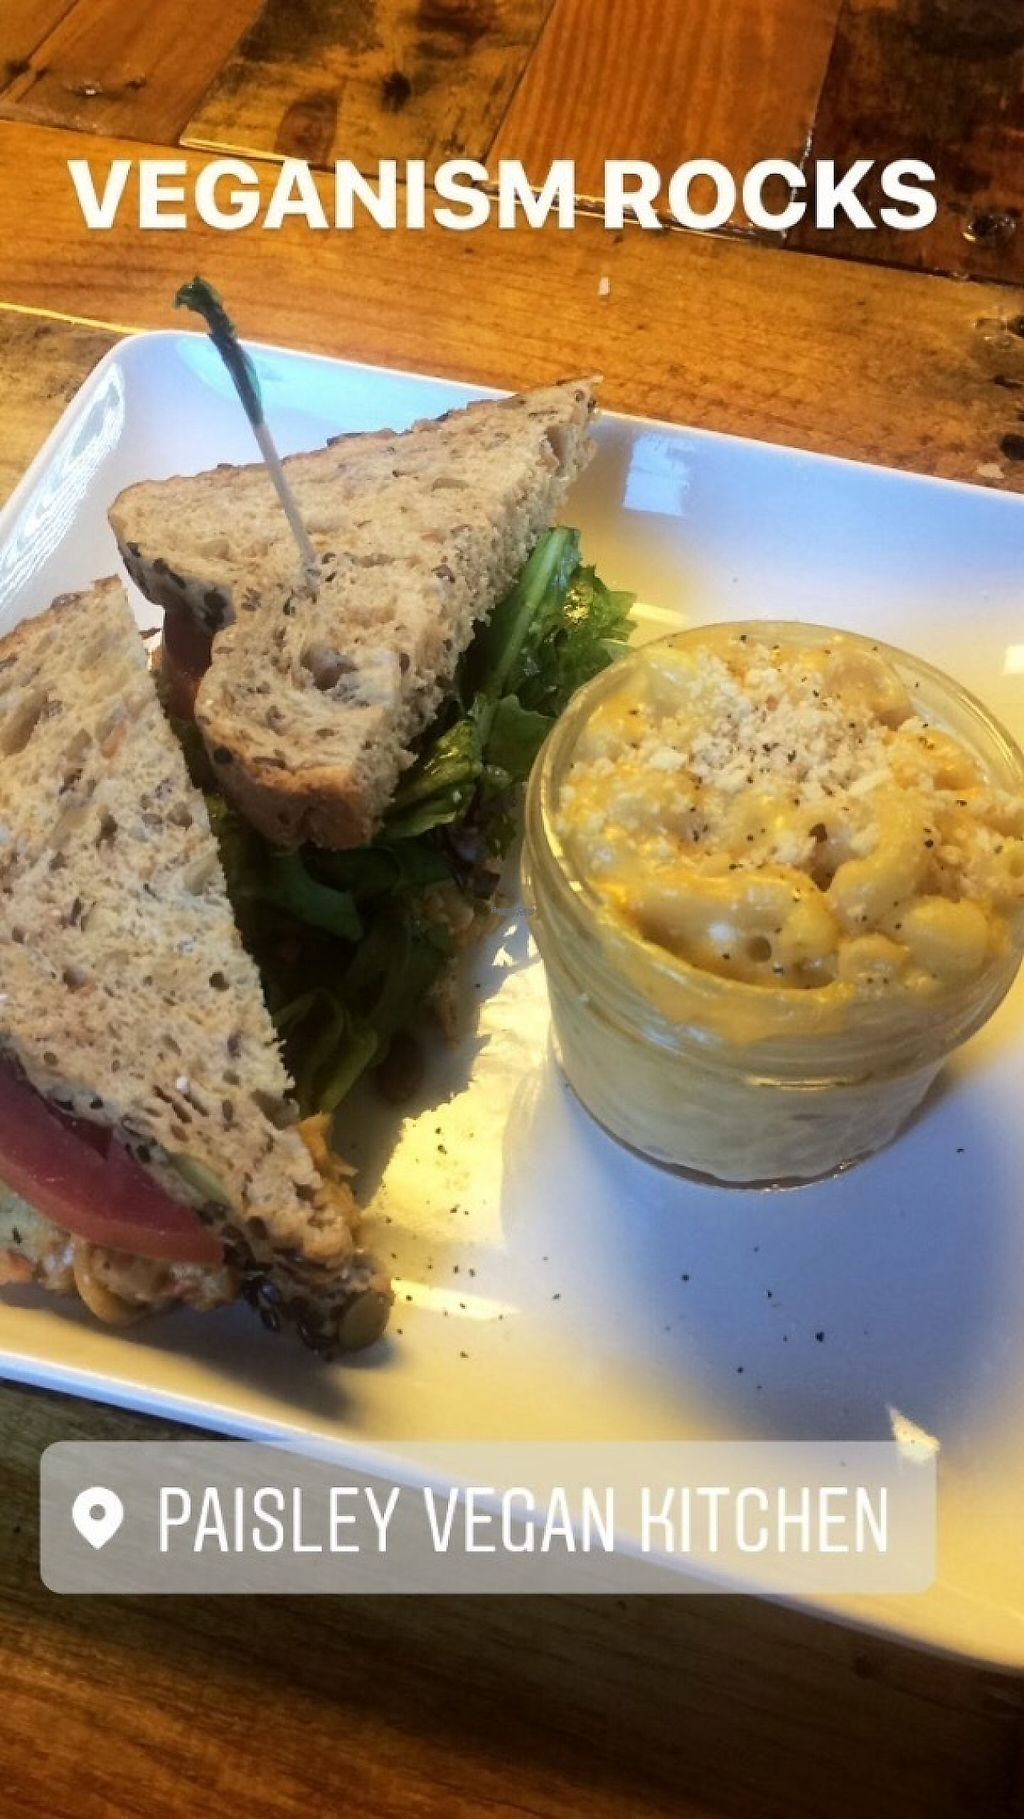 "Photo of Paisley Vegan Kitchen  by <a href=""/members/profile/alexriyan"">alexriyan</a> <br/>Chickpea salad sandwich and a side of macaroni and cheese <br/> January 24, 2017  - <a href='/contact/abuse/image/71867/215587'>Report</a>"